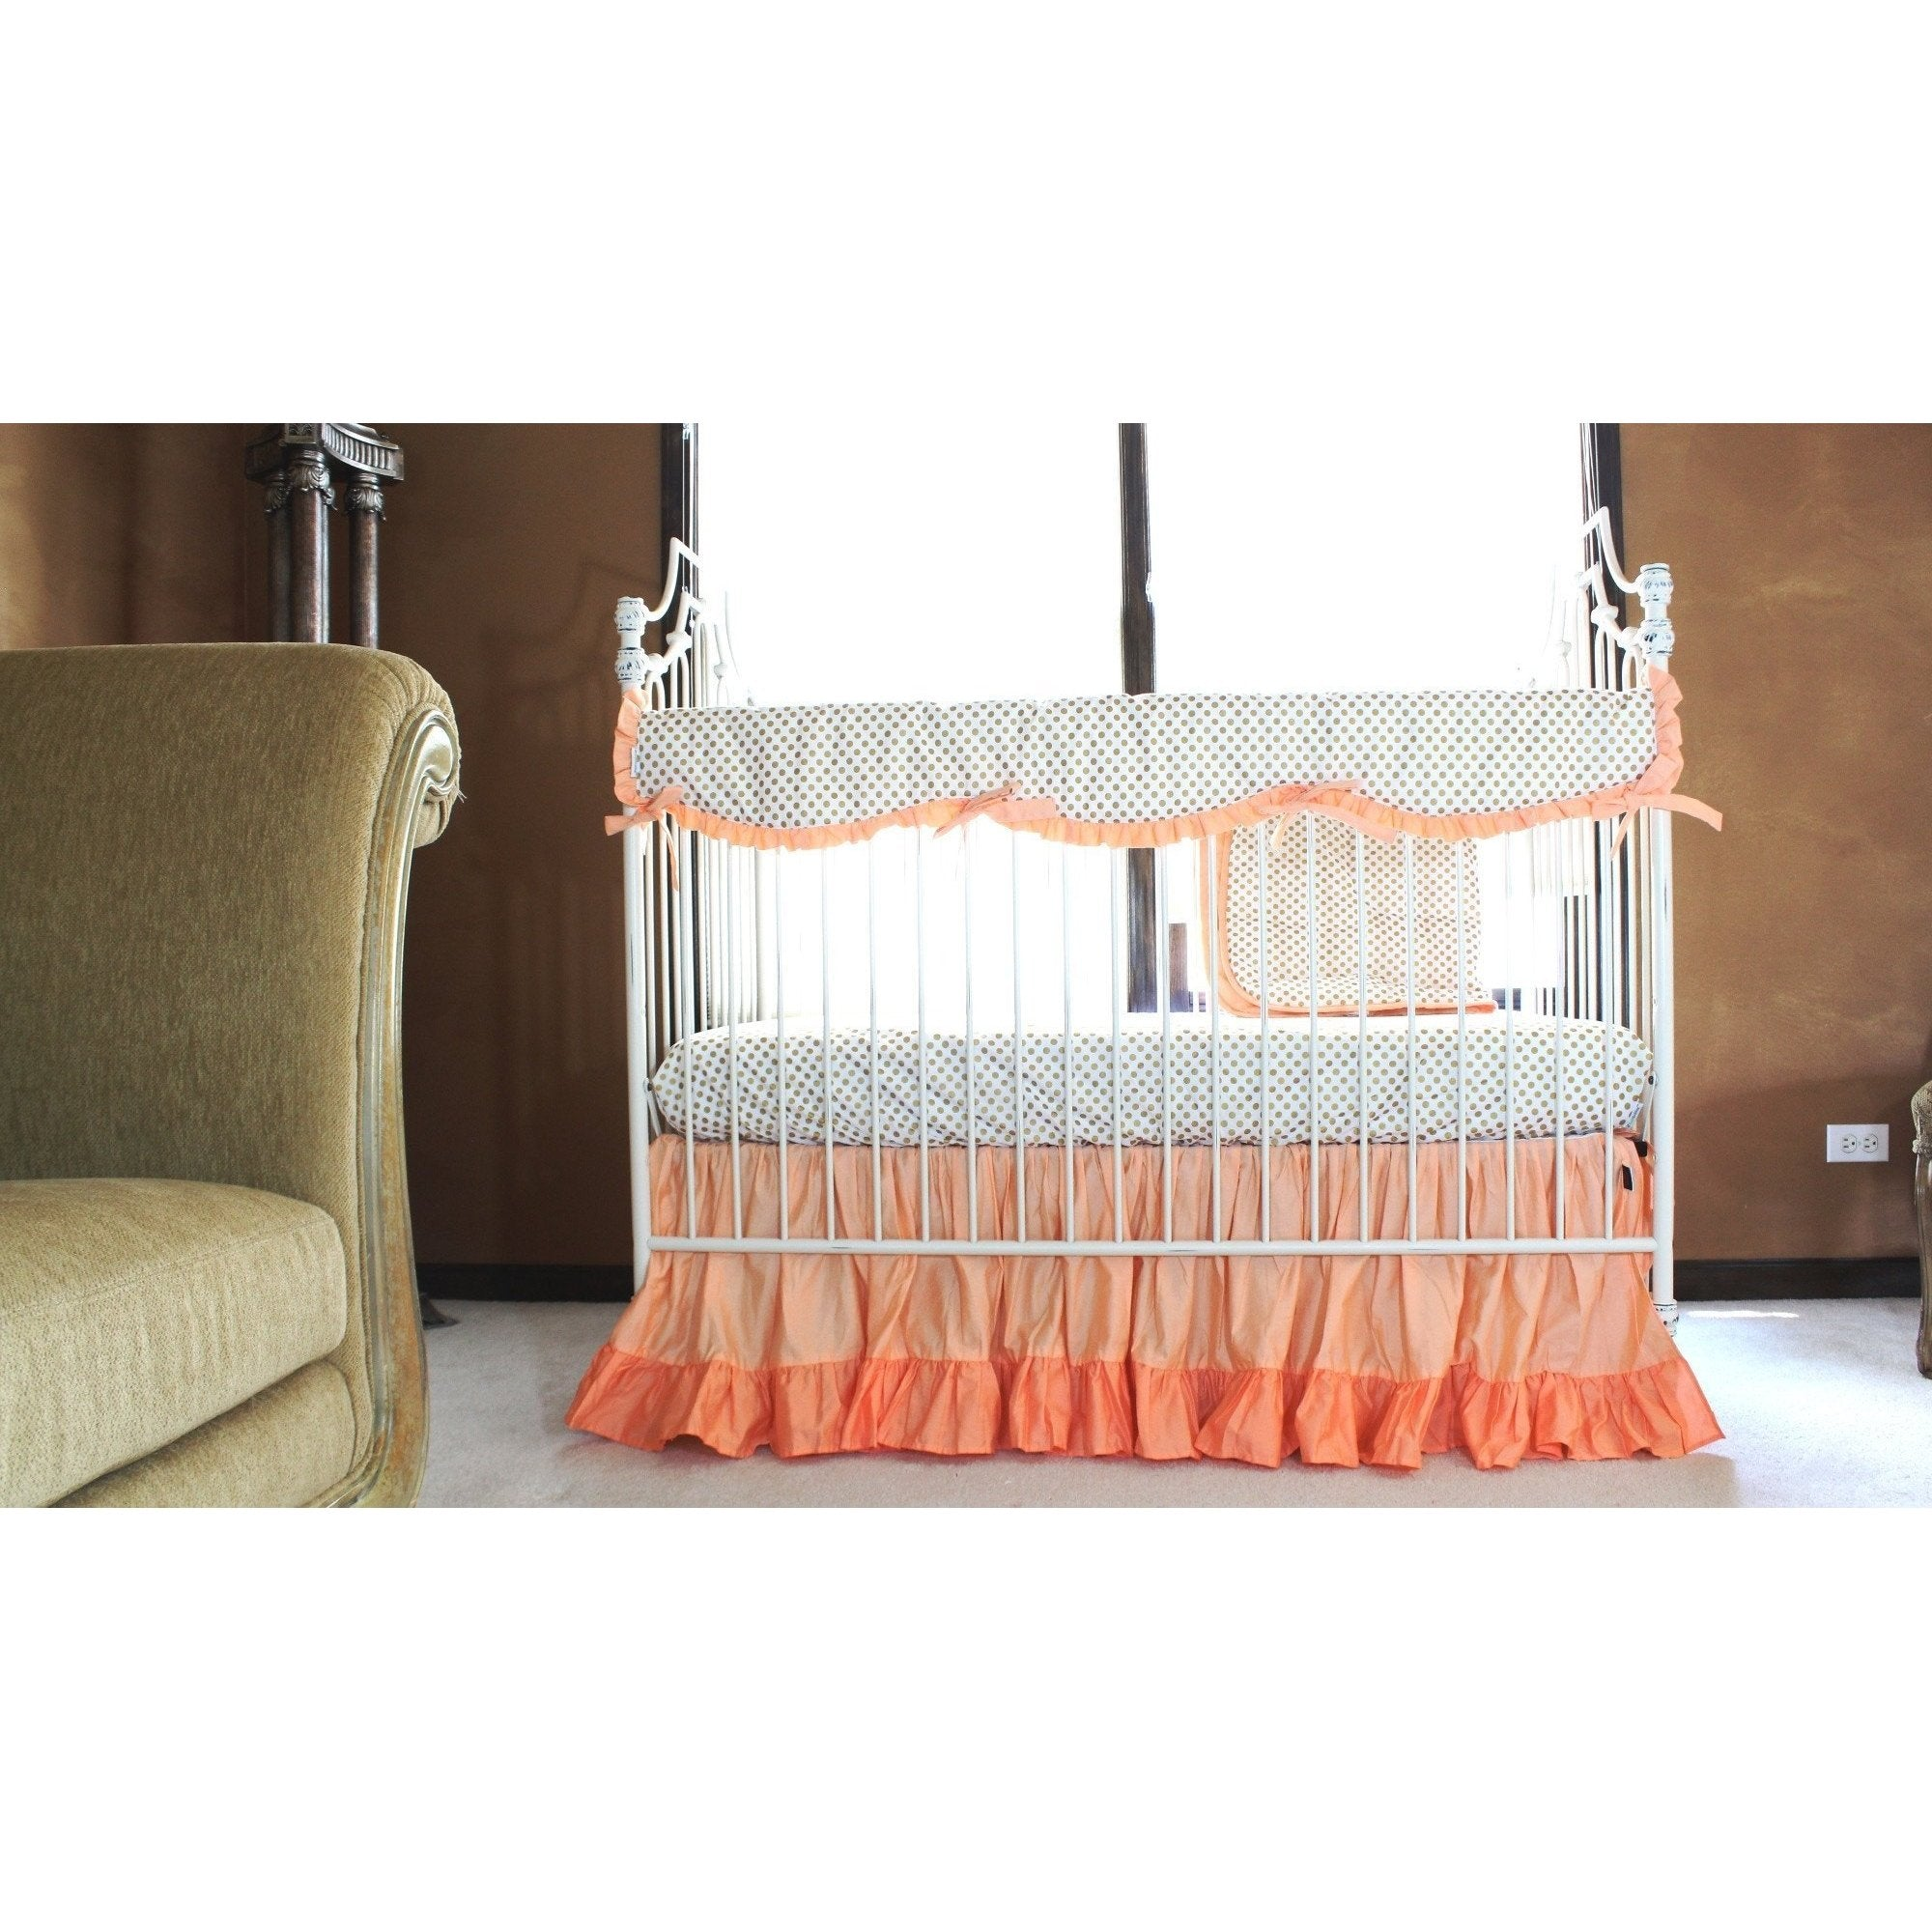 Molly's Gold Dots and Coral Ruffle Crib Bedding Set | Daybed Bedding-Crib Bedding Set-Jack and Jill Boutique